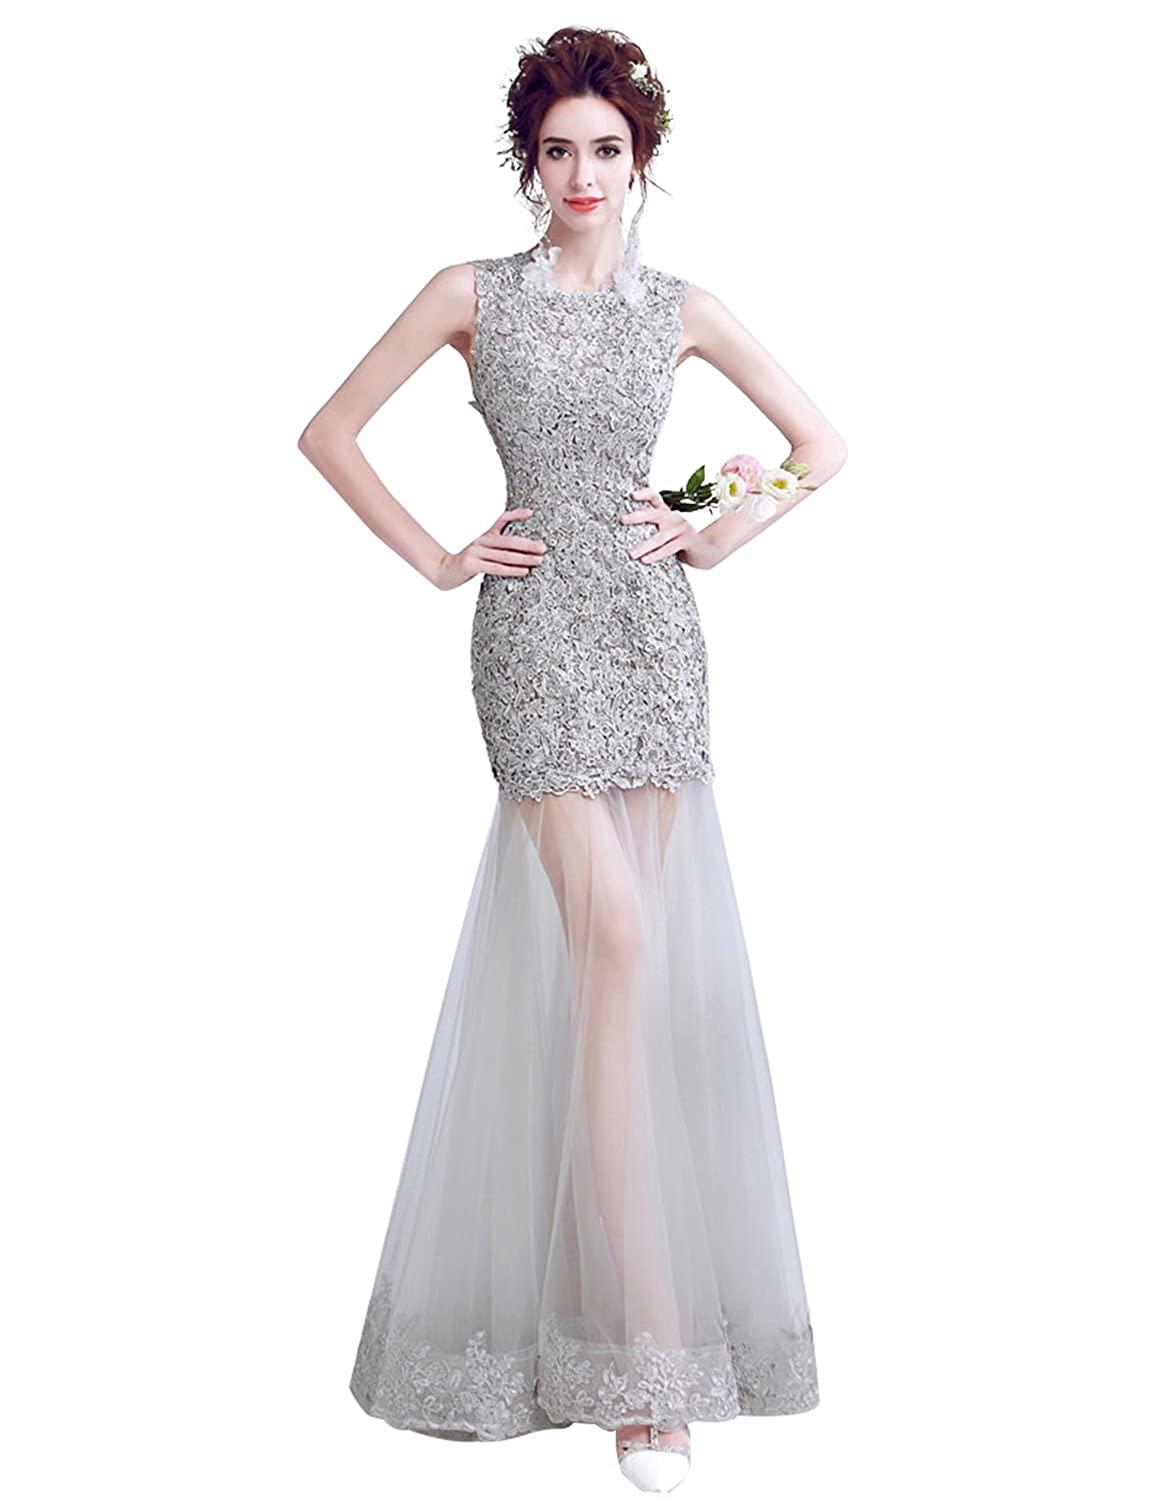 86618489b65 Erosebridal Lace Mermaid Evening Dress Appliques Illusion Formal Gowns  Wedding Guest Dress at Women s Clothing